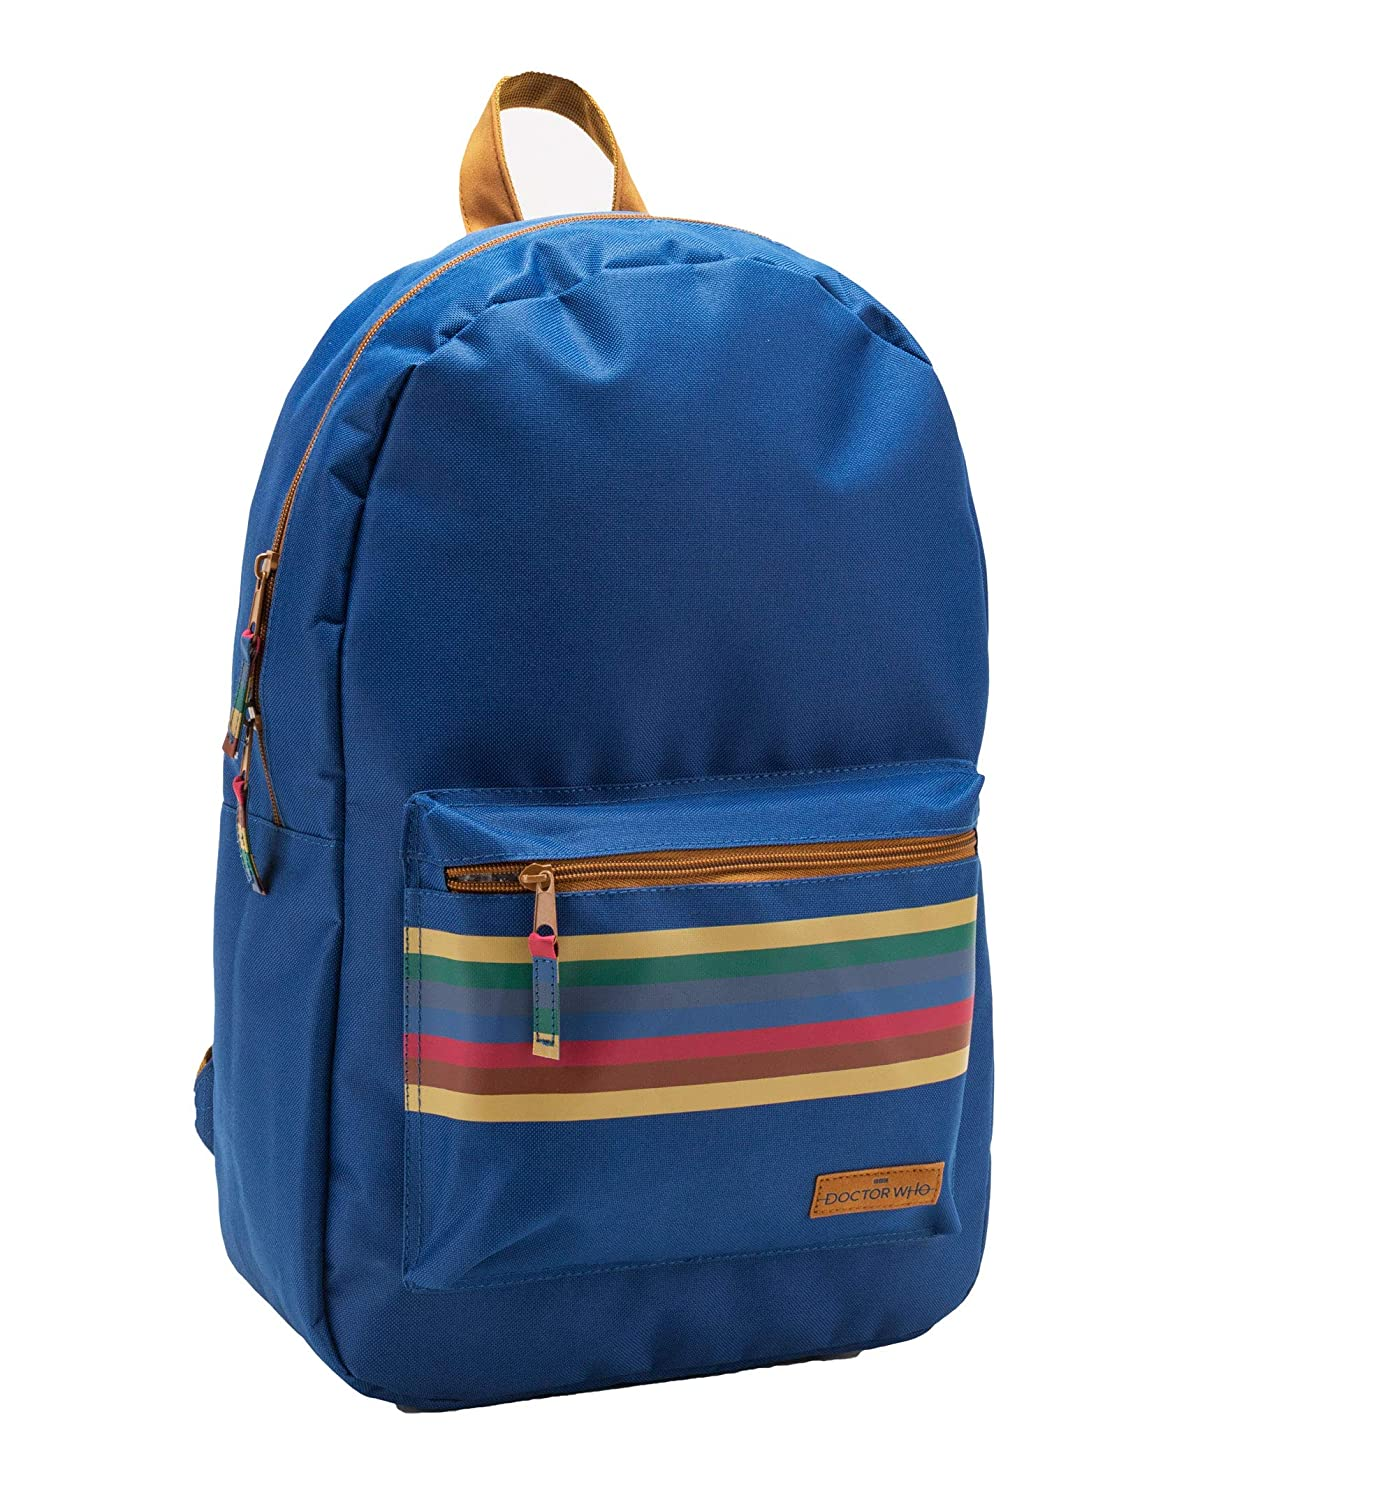 Doctor Who Rainbow Pocket Backpack